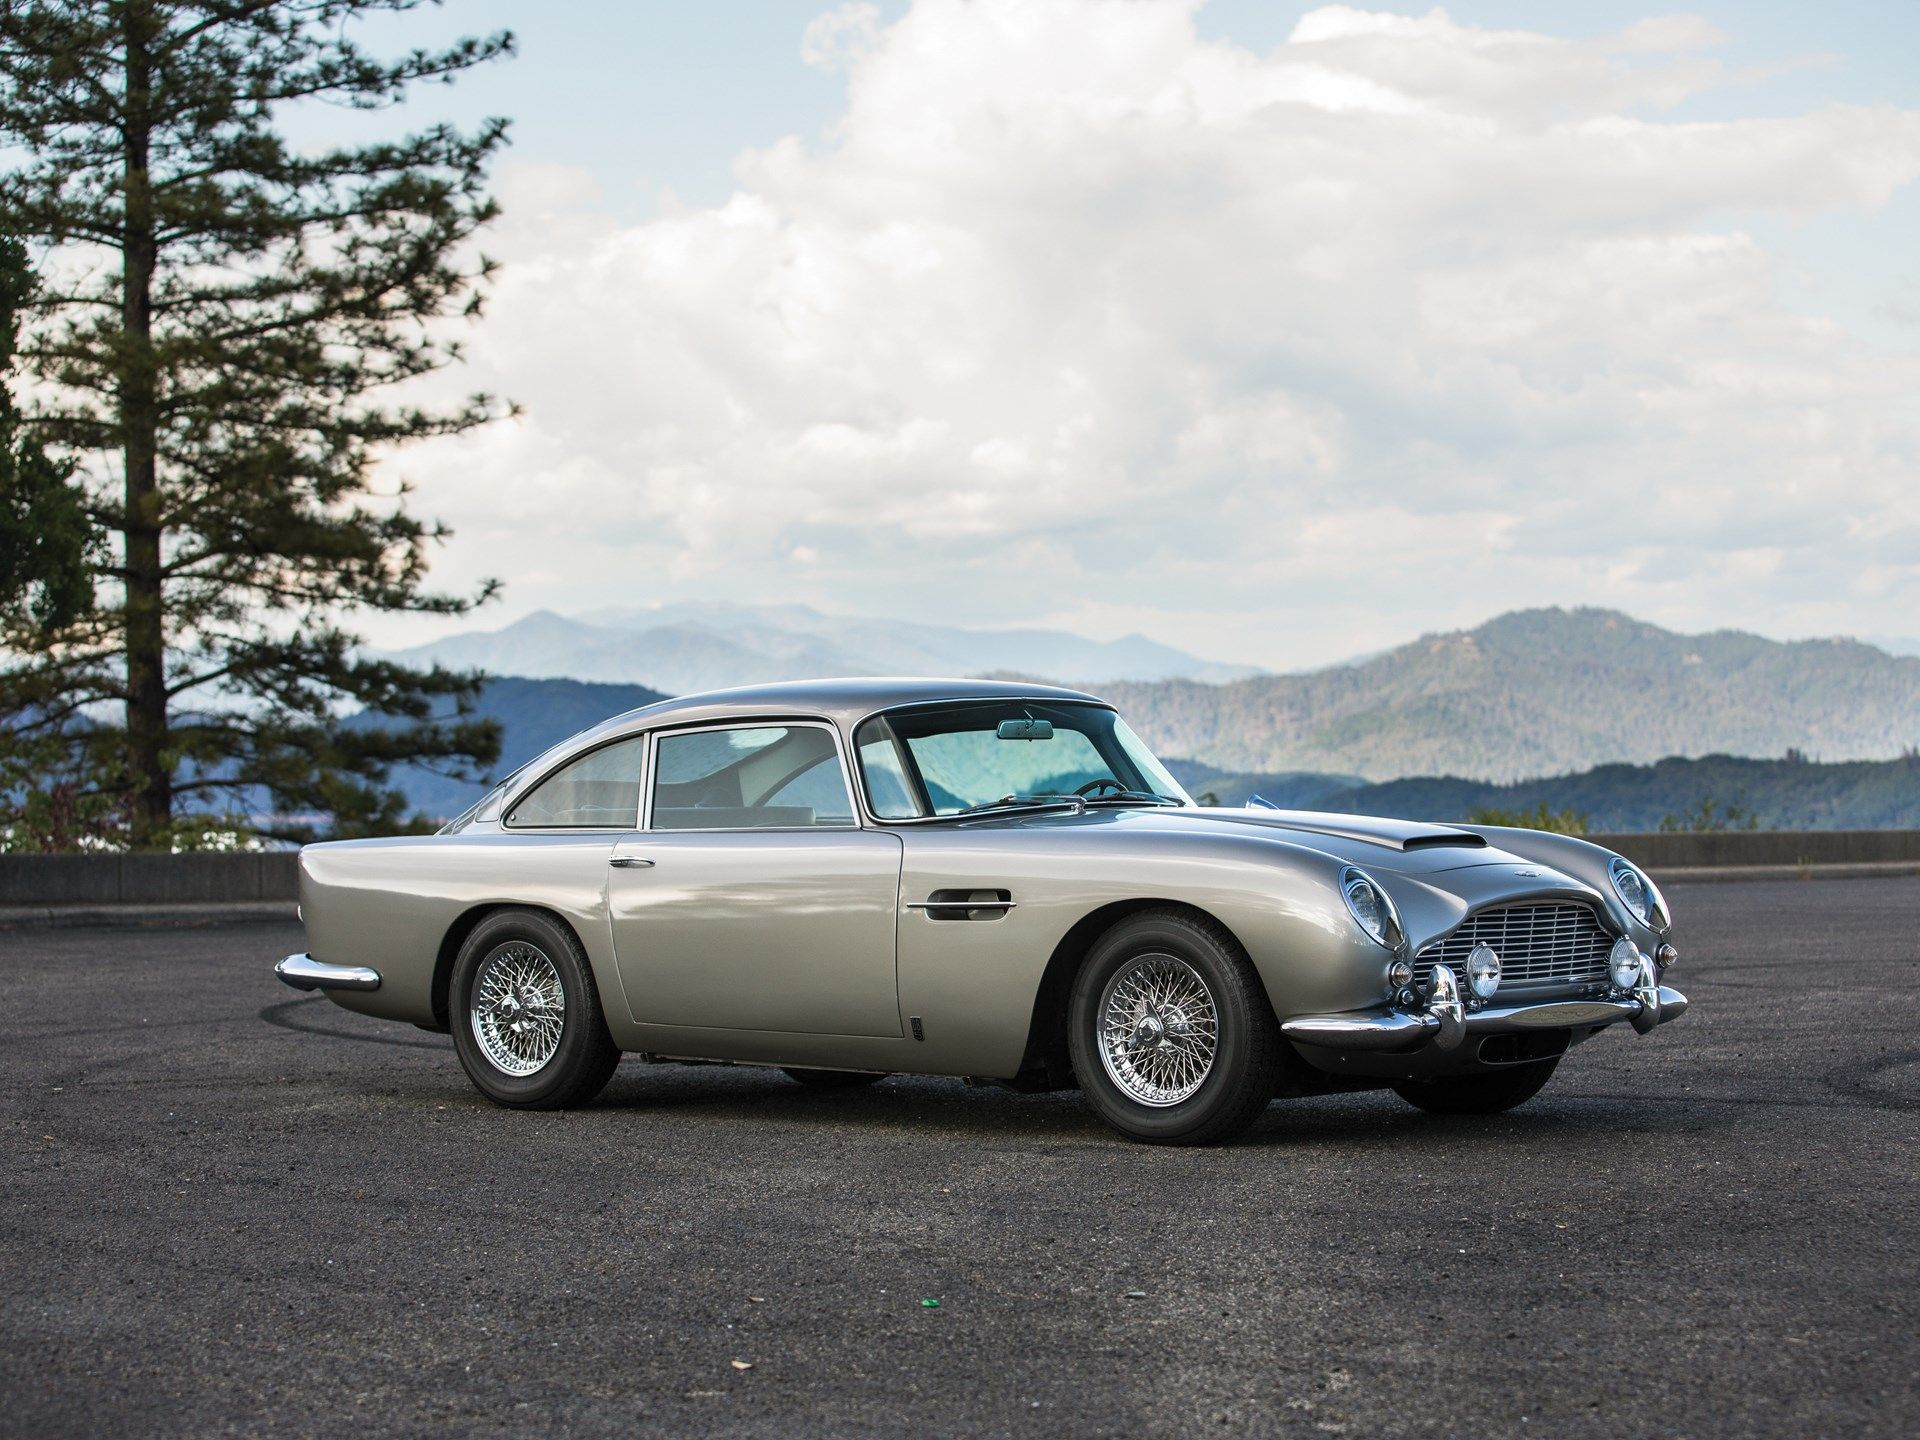 James Bond's Aston Martin DB5 Will Be Up For Auction This August